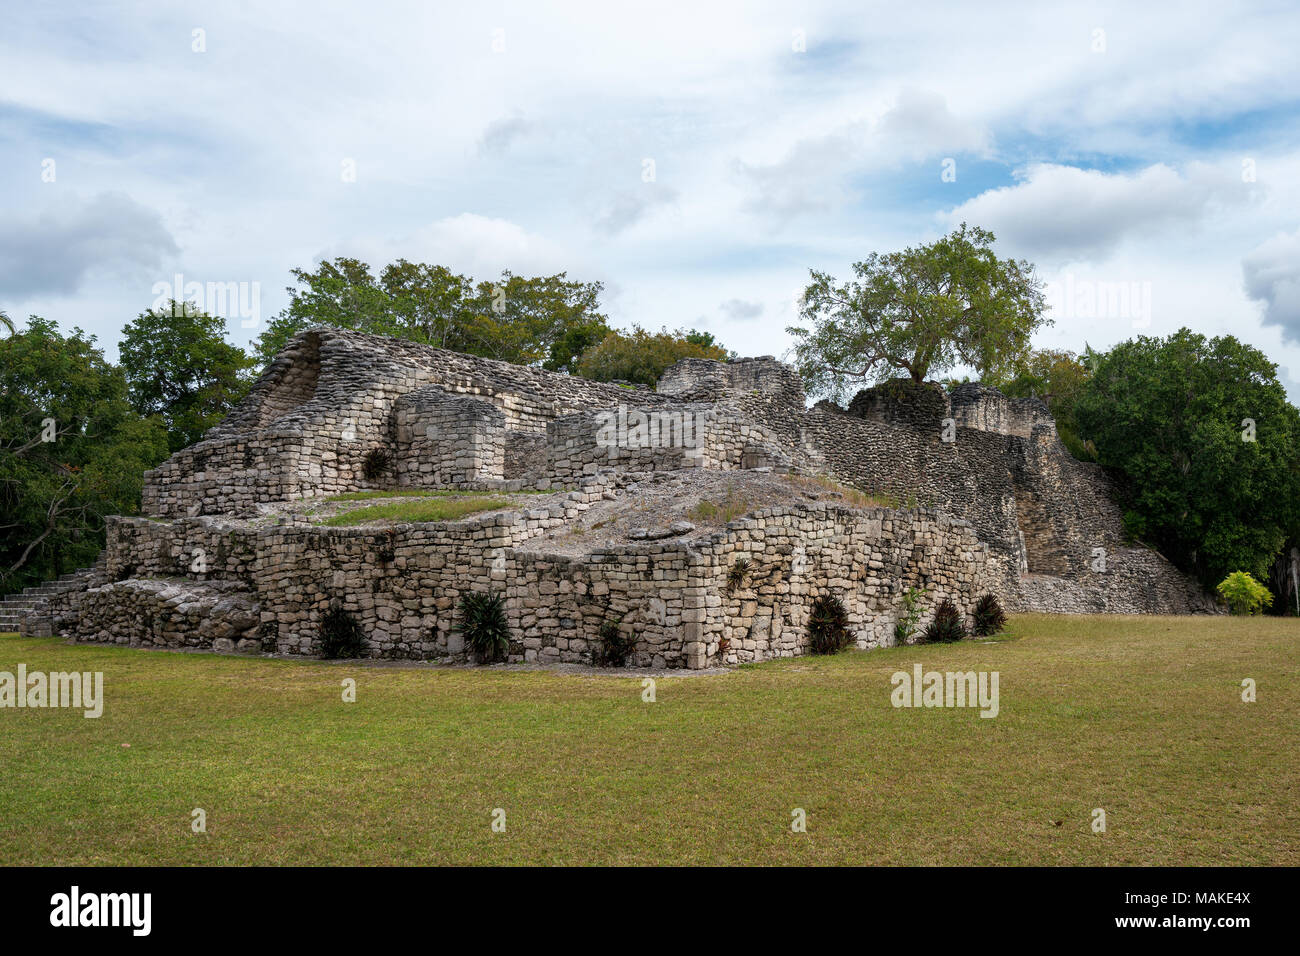 Kohunlich  is a large archaeological site of the pre-Columbian Maya civilization - Stock Image